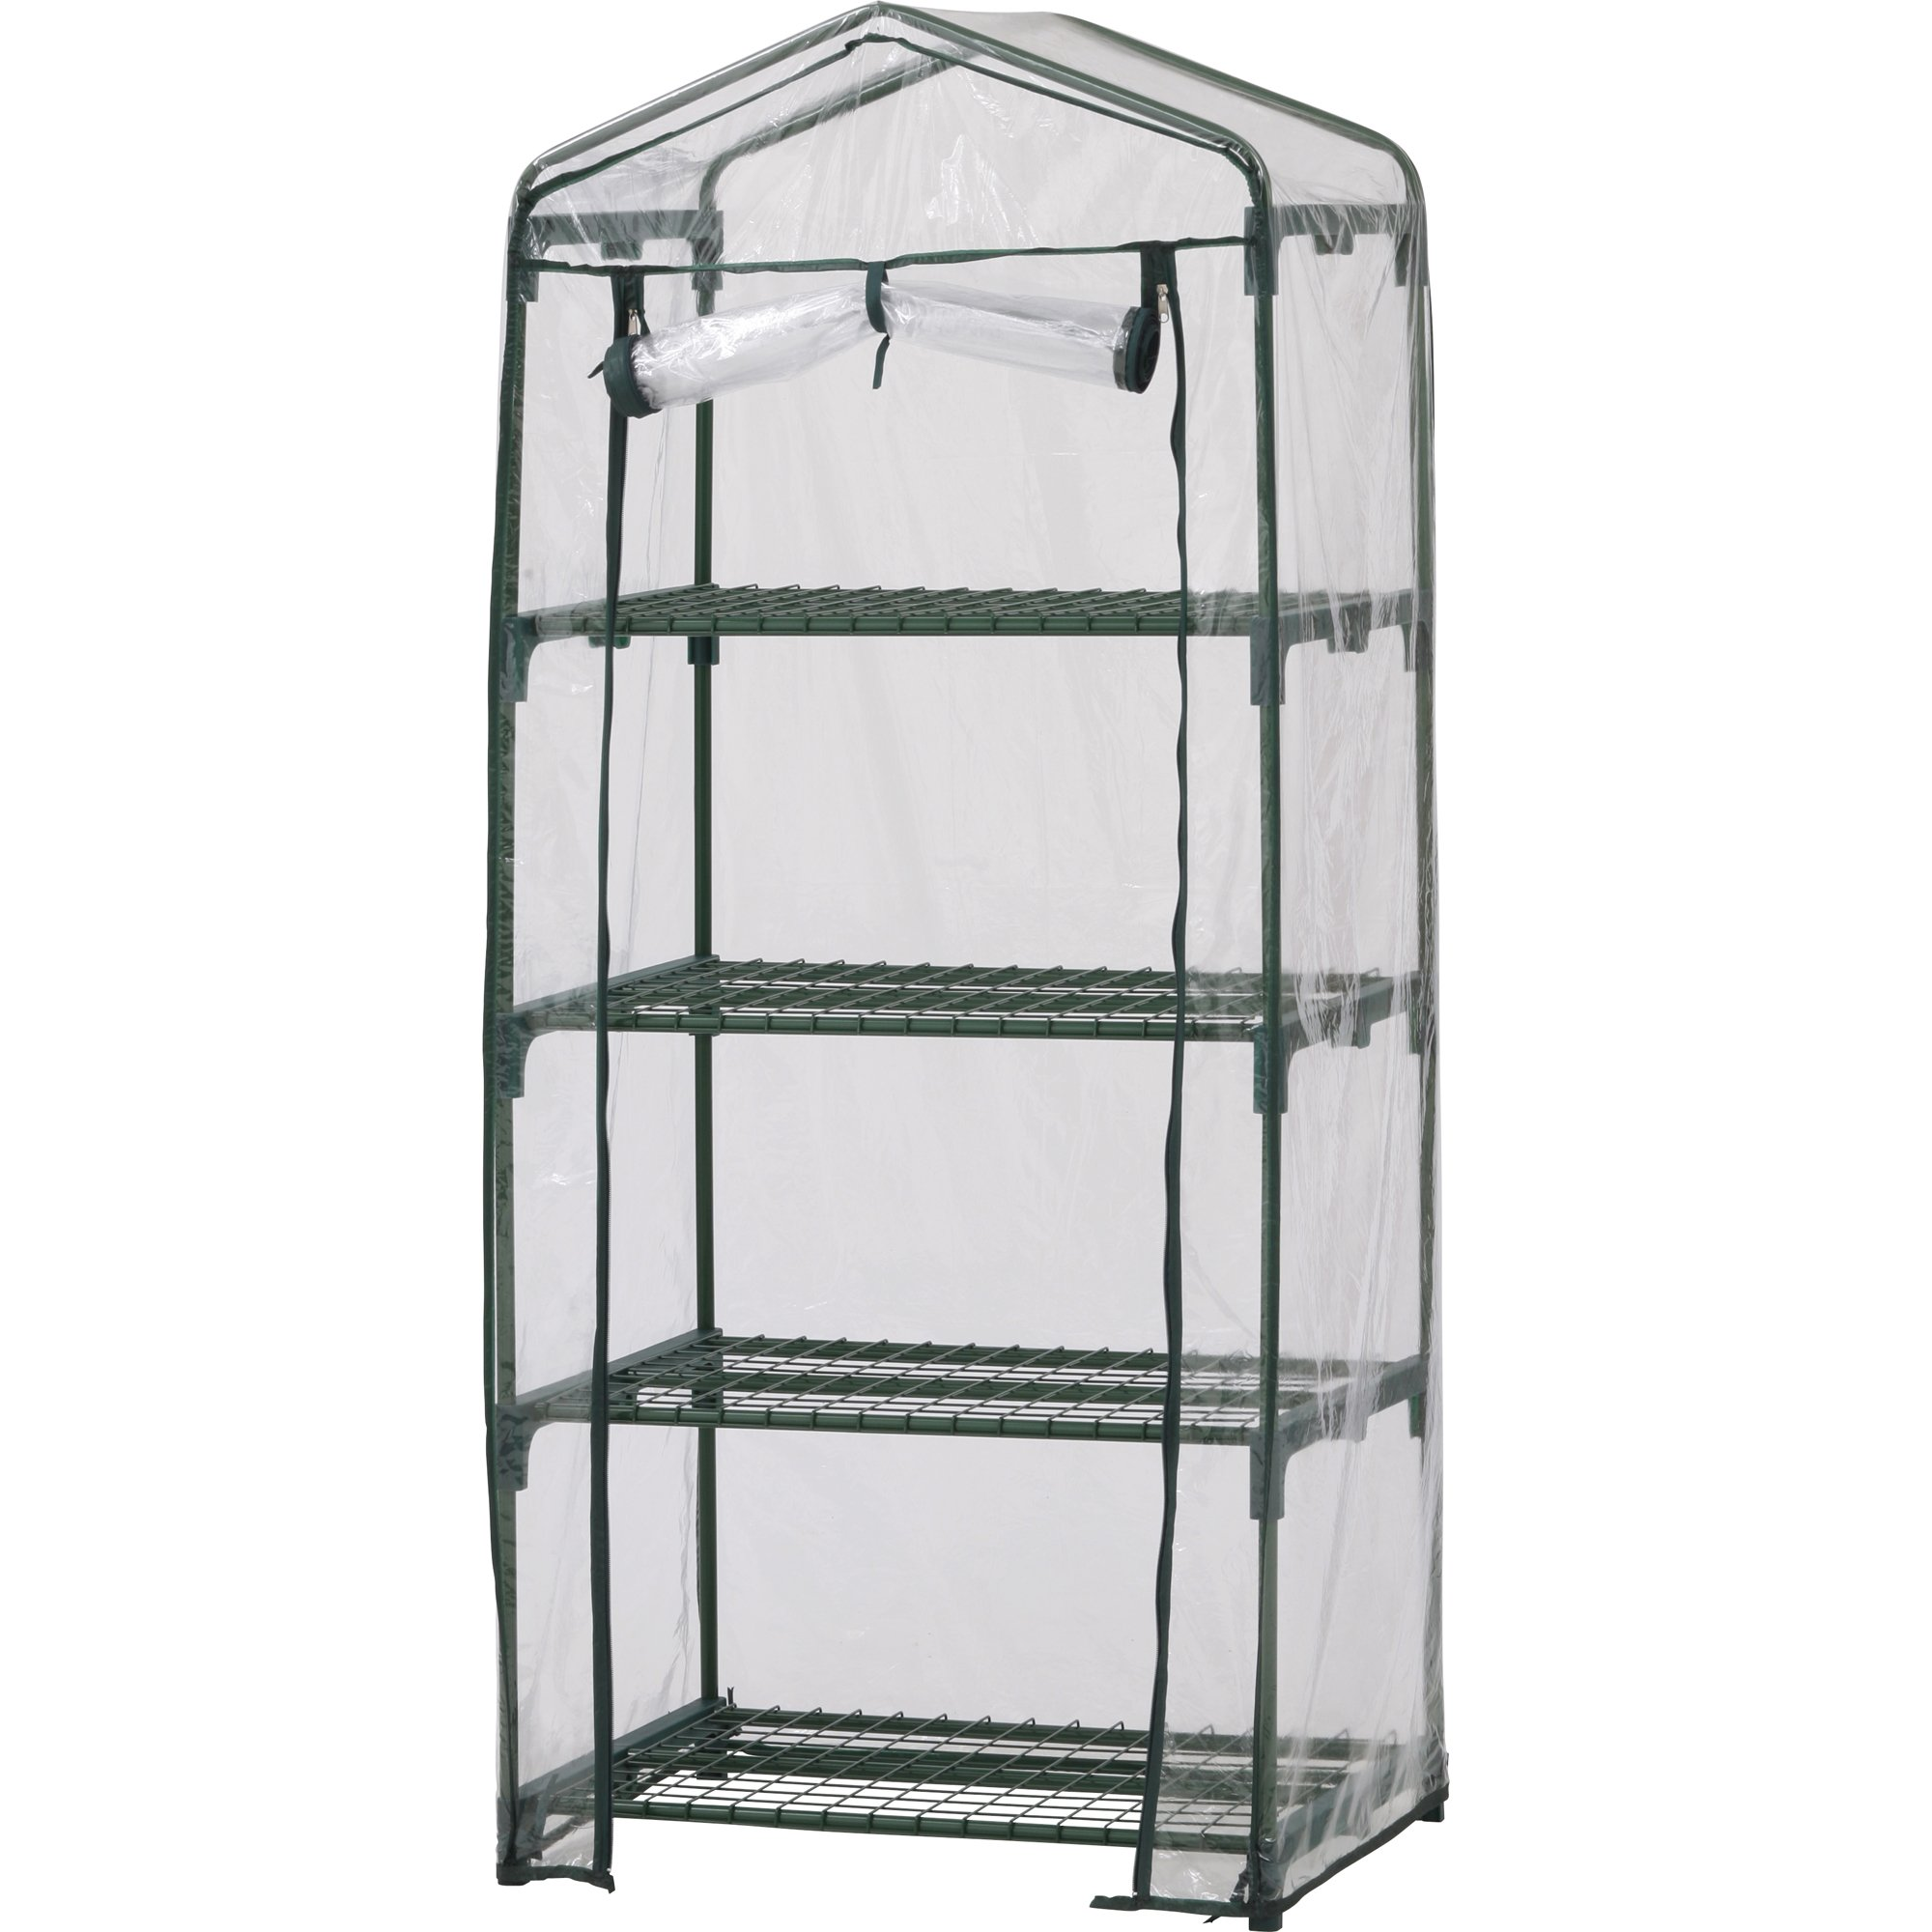 Early Start 4 Shelf Greenhouse, 40W Inch X 20D Inch X 66H Inch